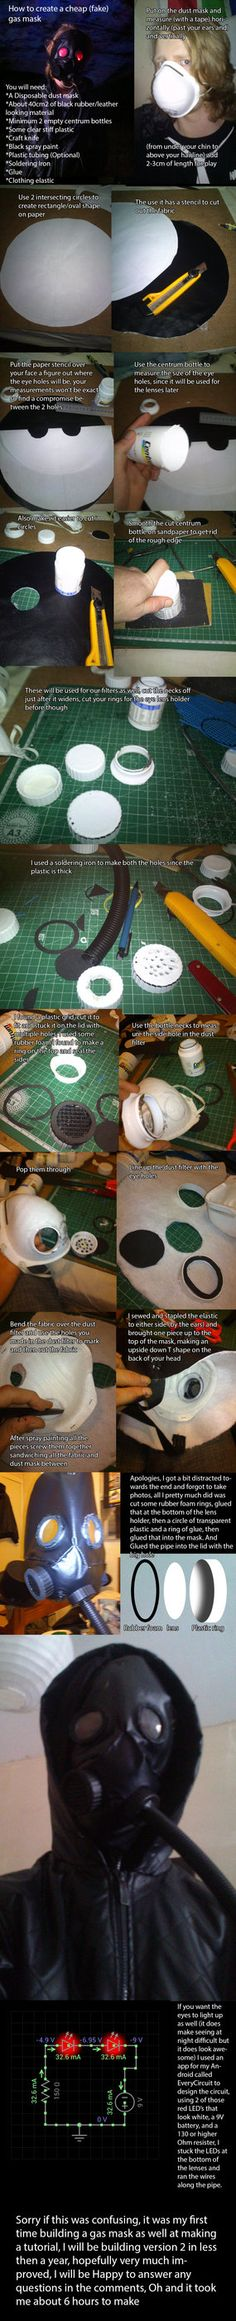 Cheap (Fake) Gas Mask Tutorial by ~tpexr on deviantART